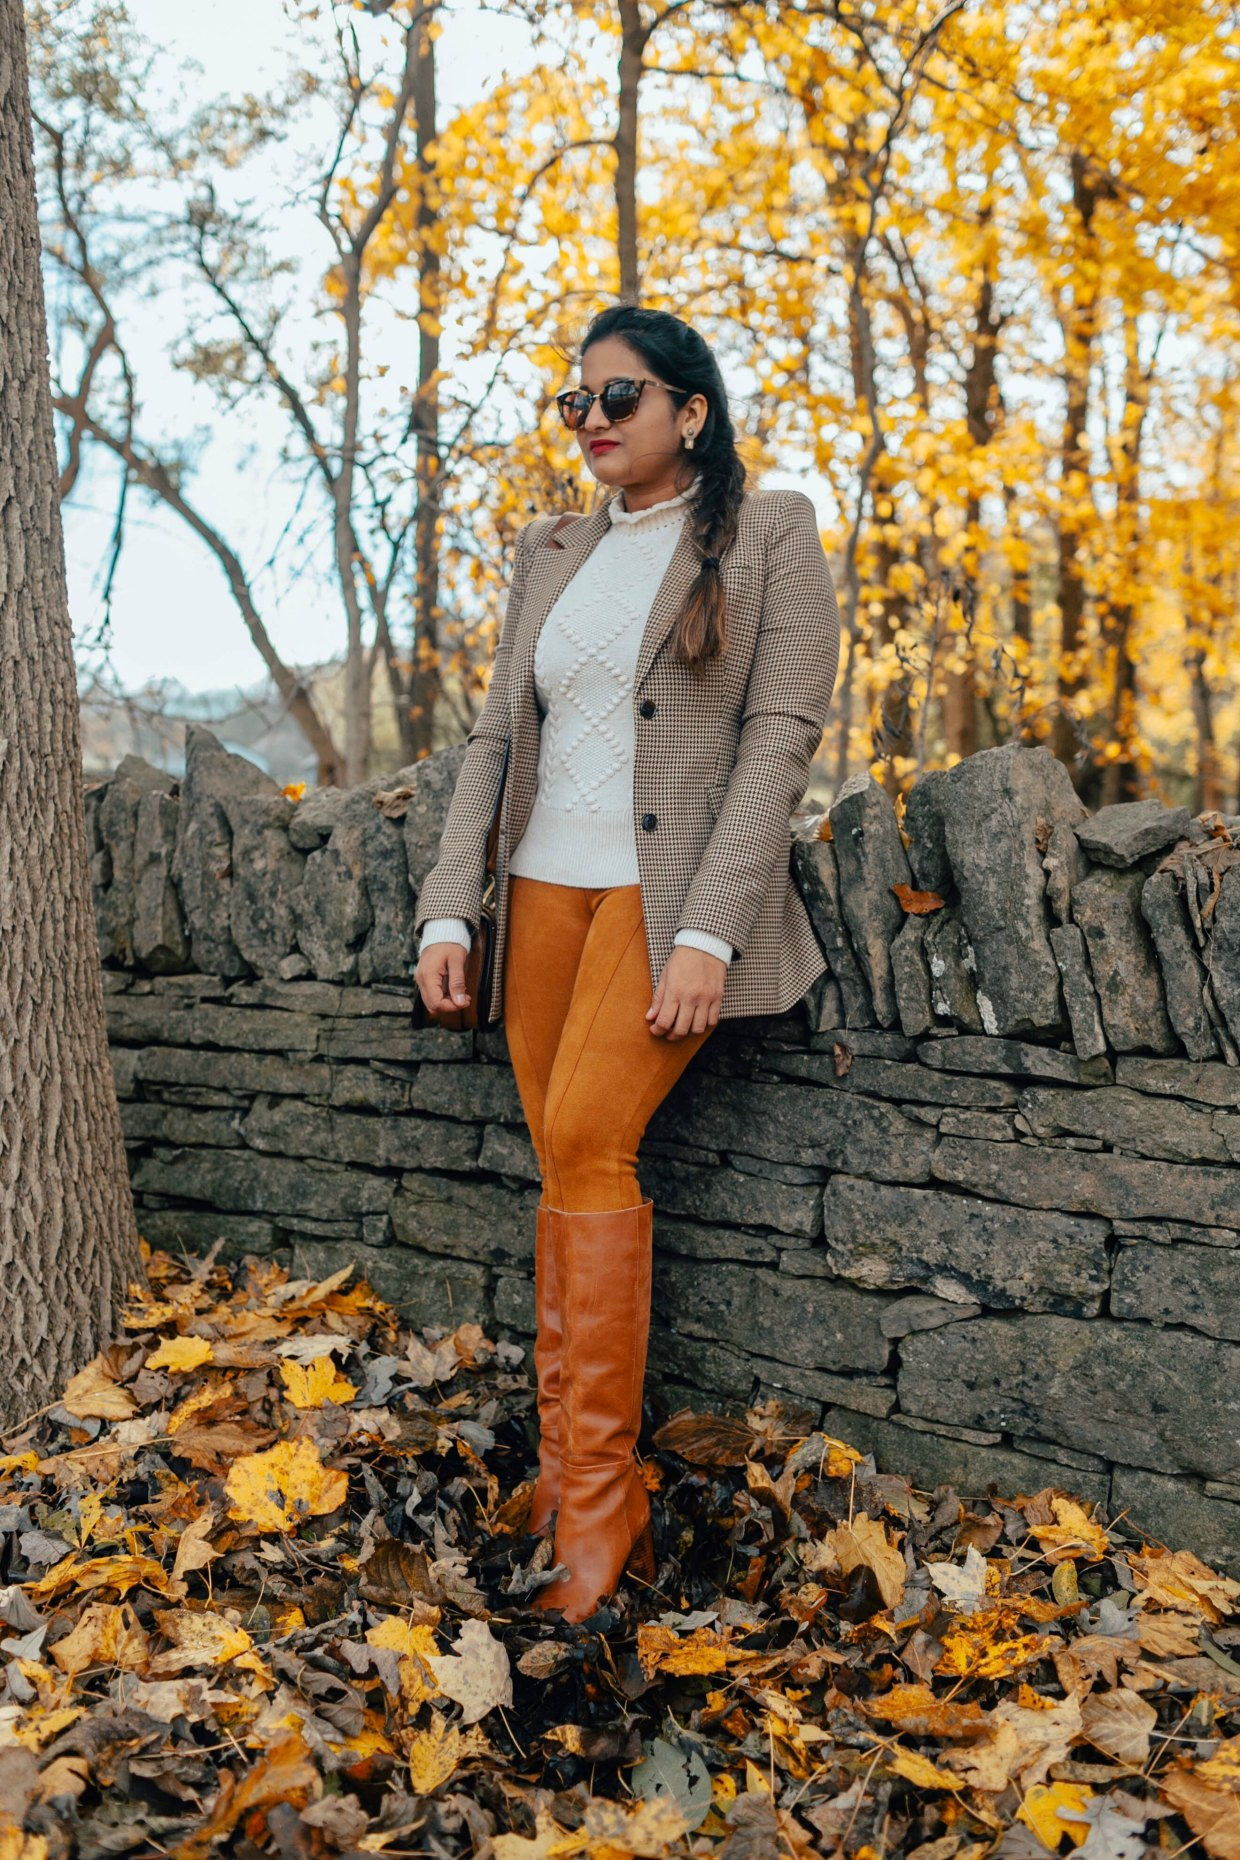 wearing Nine West Women's Christie Knee High Boot | The Best Fall Boots Under $150 featured by top US fashion blog, Dreaming Loud: over the knee leather boots